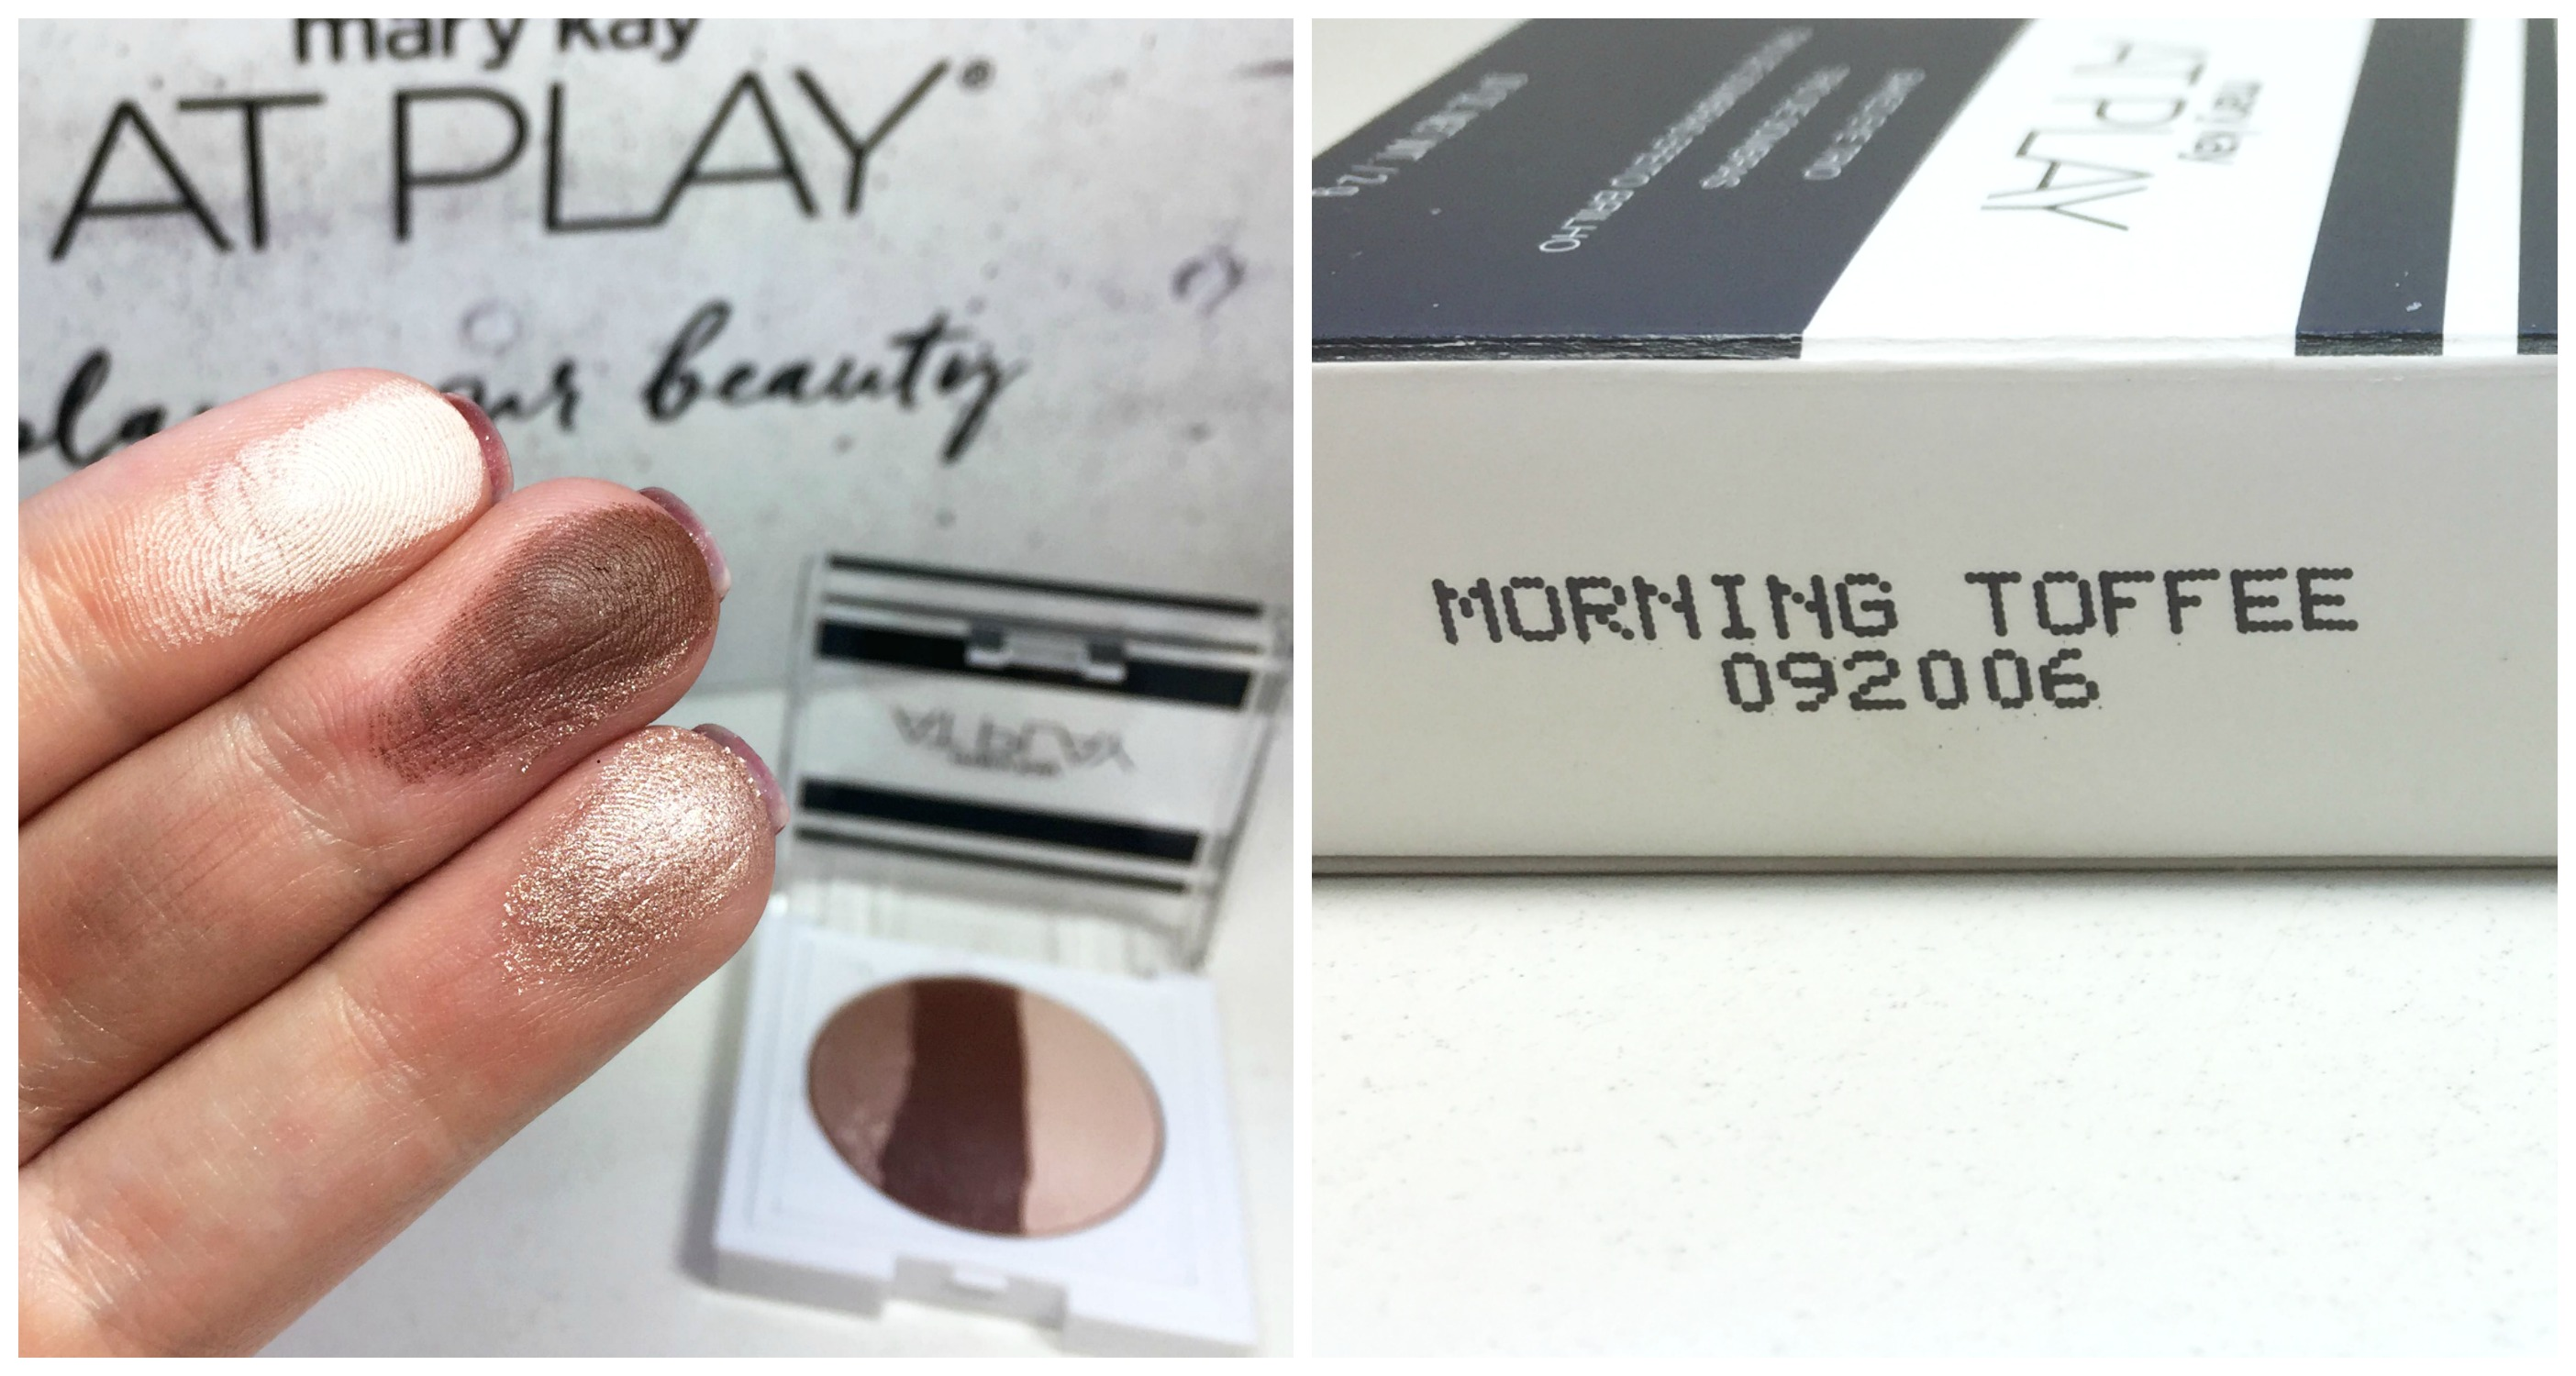 dicas-da-raphinha-mary-kay-at-play-morning-toffee